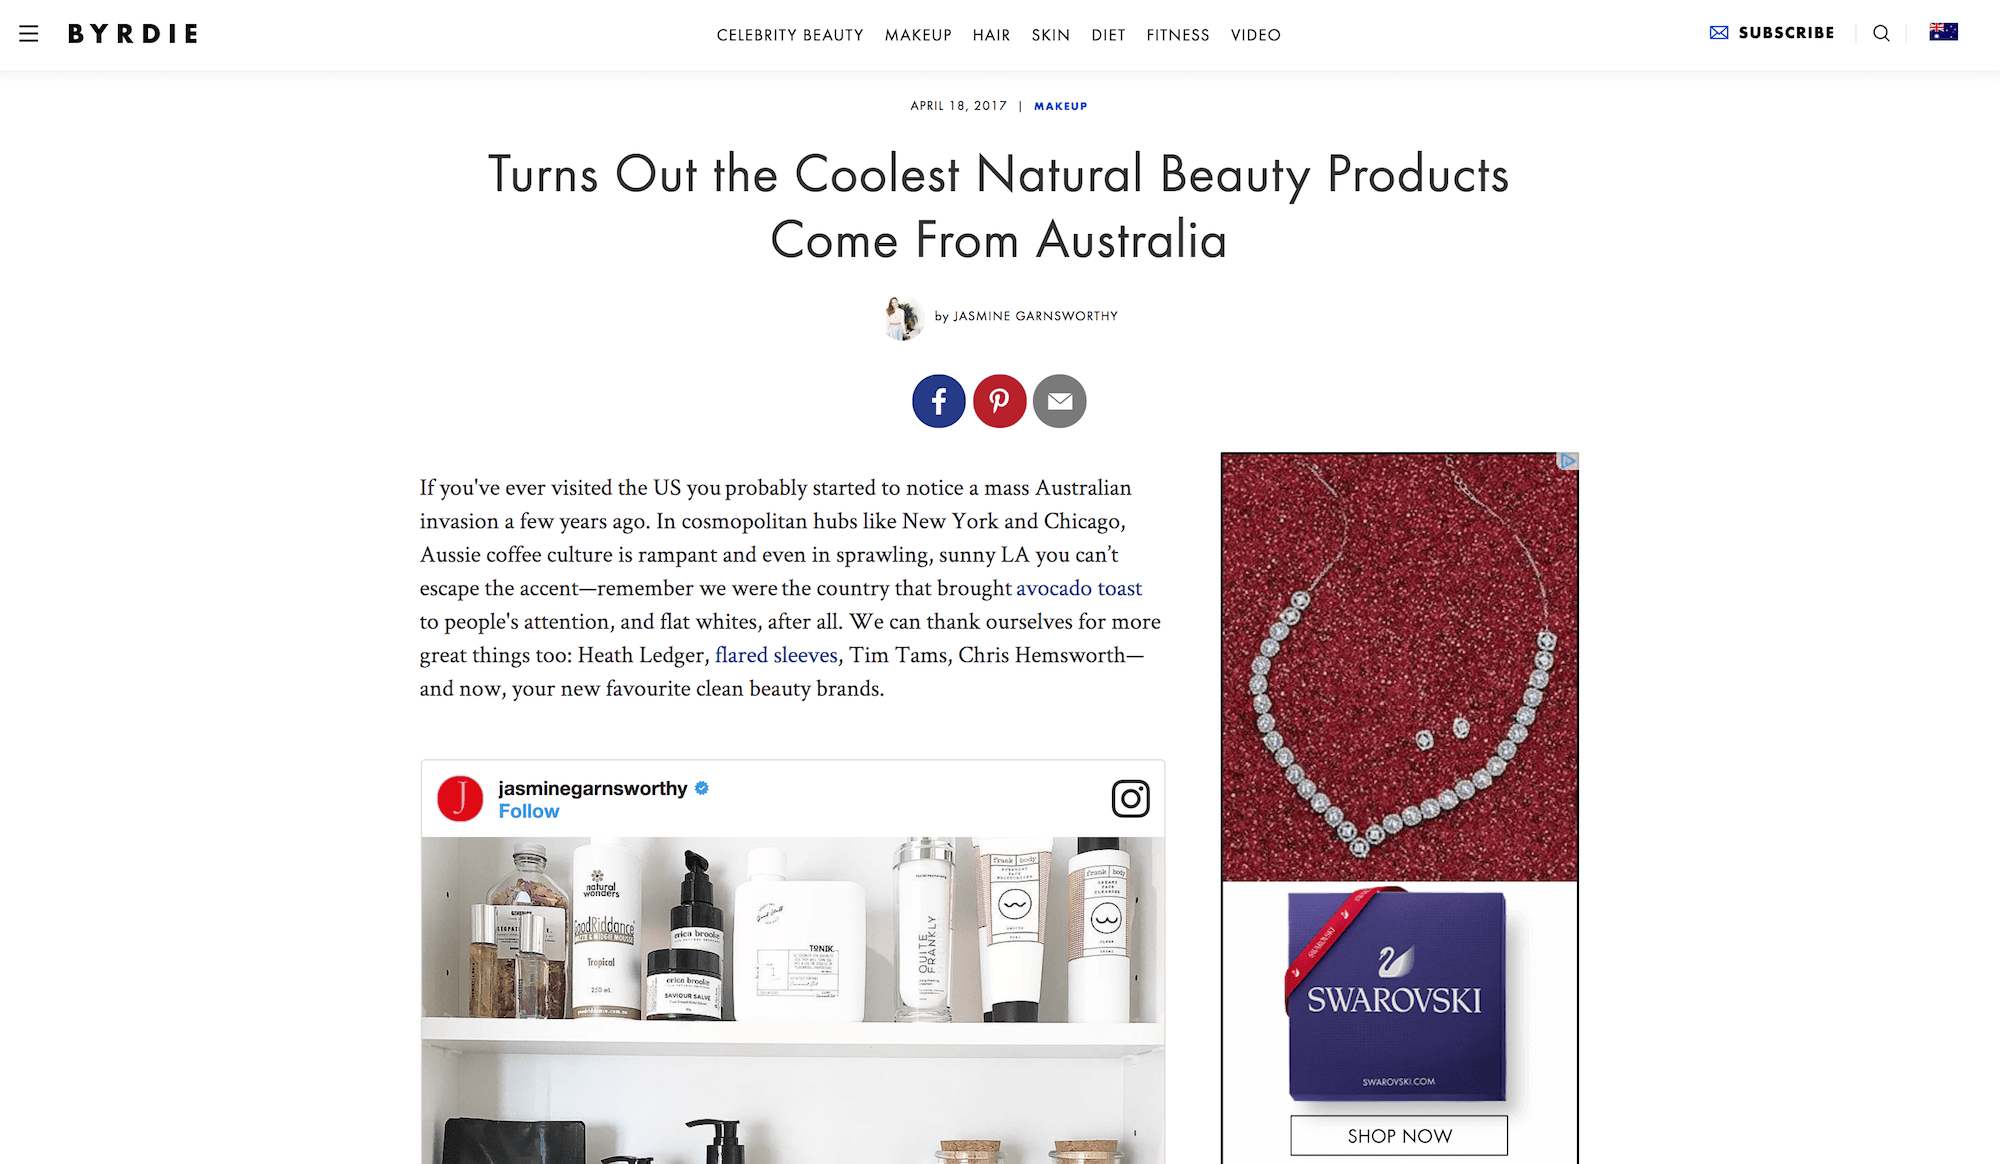 Byrdie.com – Turns out the coolest natural beauty products come from Australia